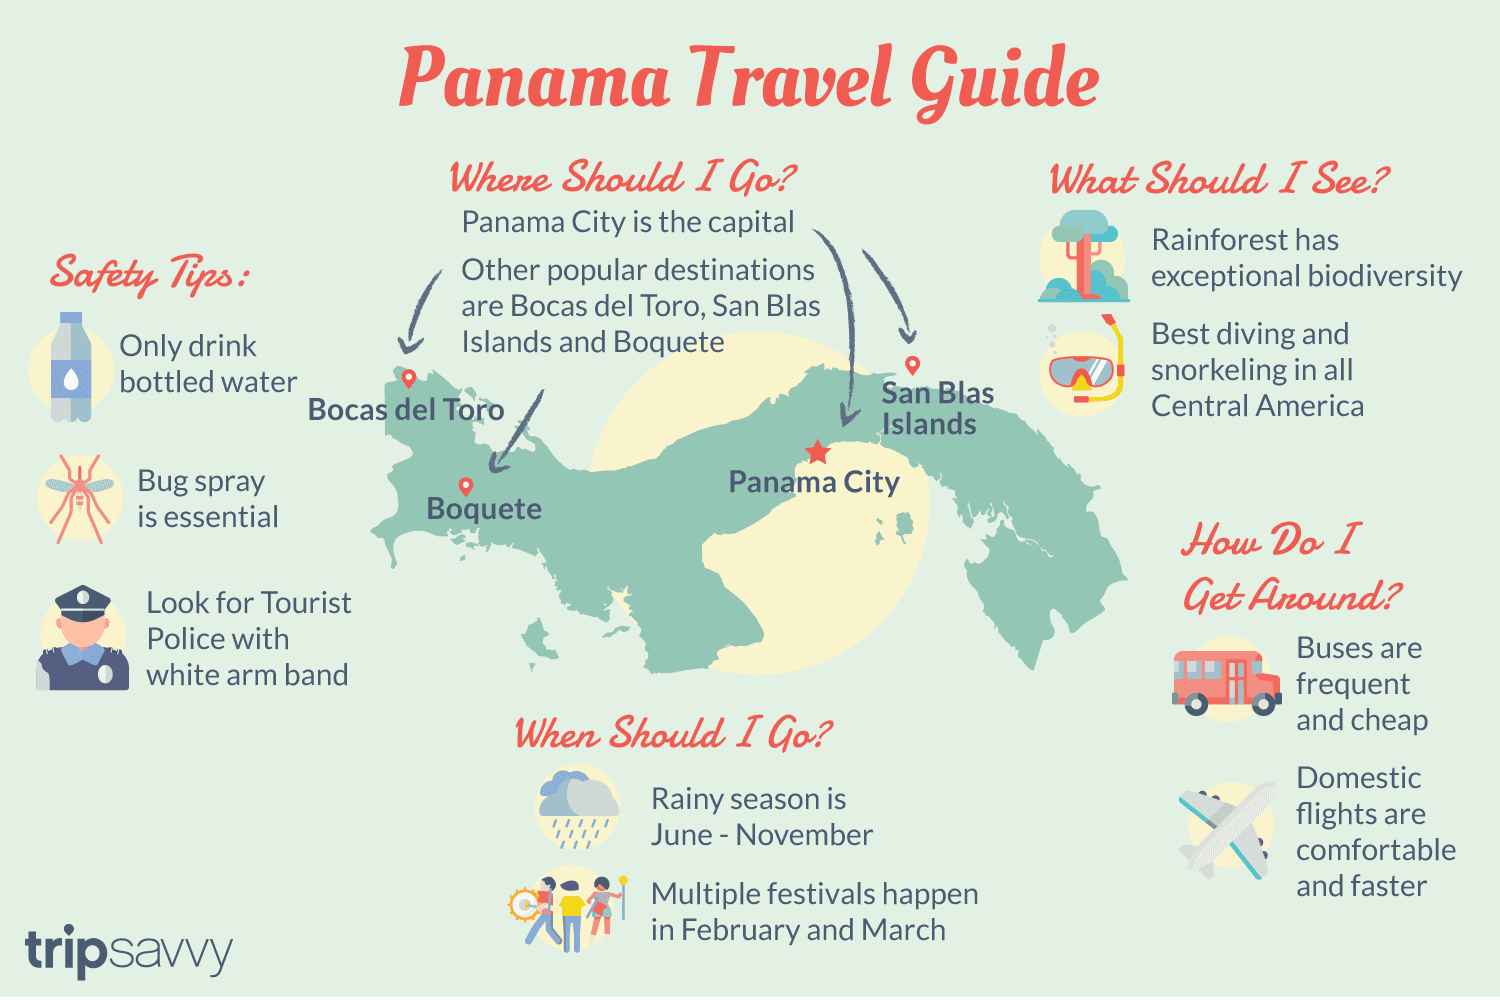 An illustration pointing out key facts about Panama